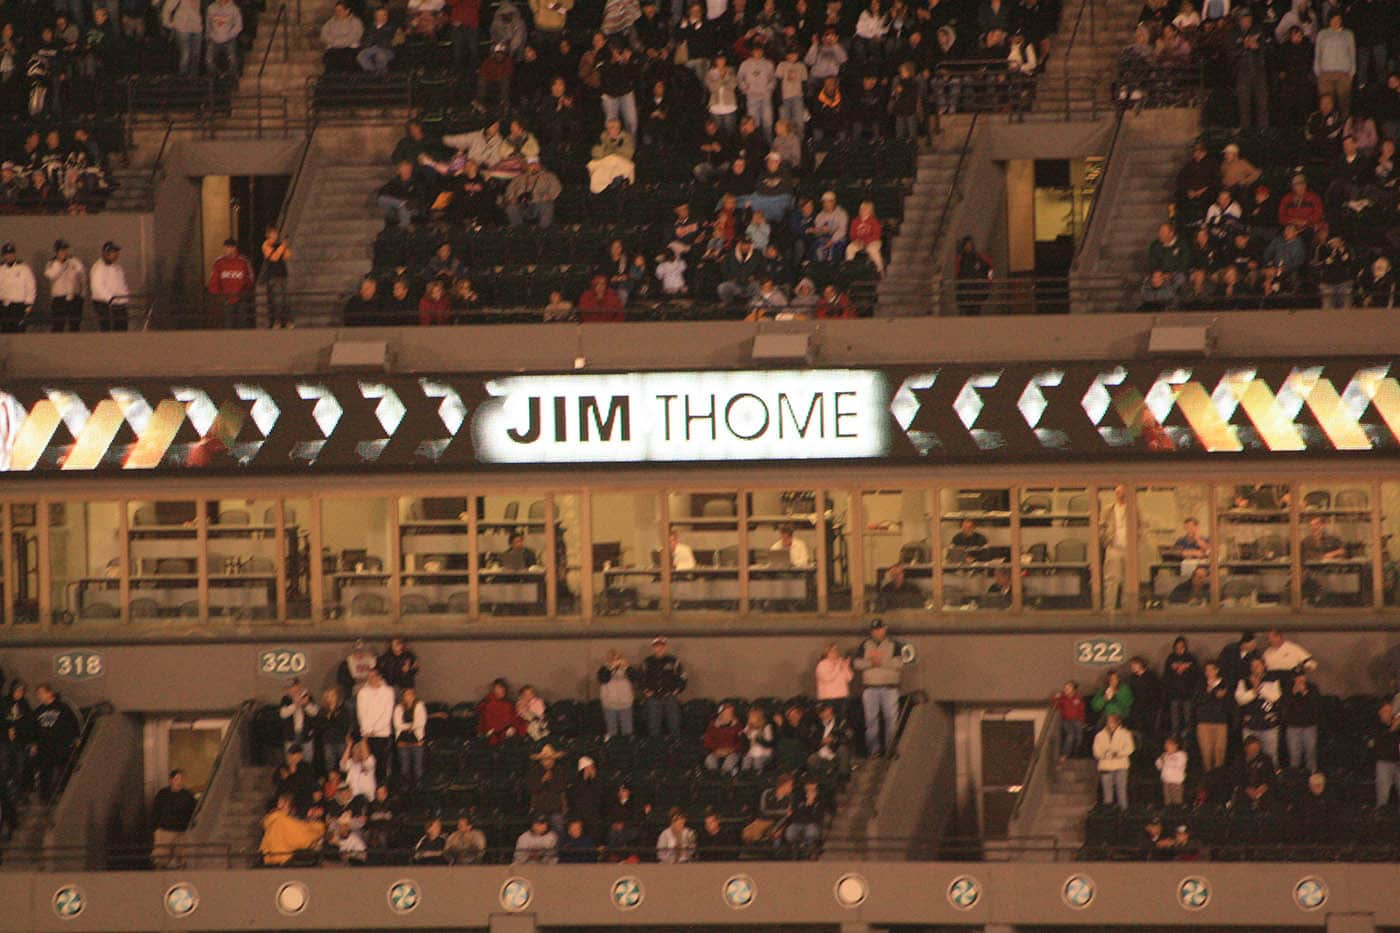 Not Jim Thome's 500th home run at a White Sox game.